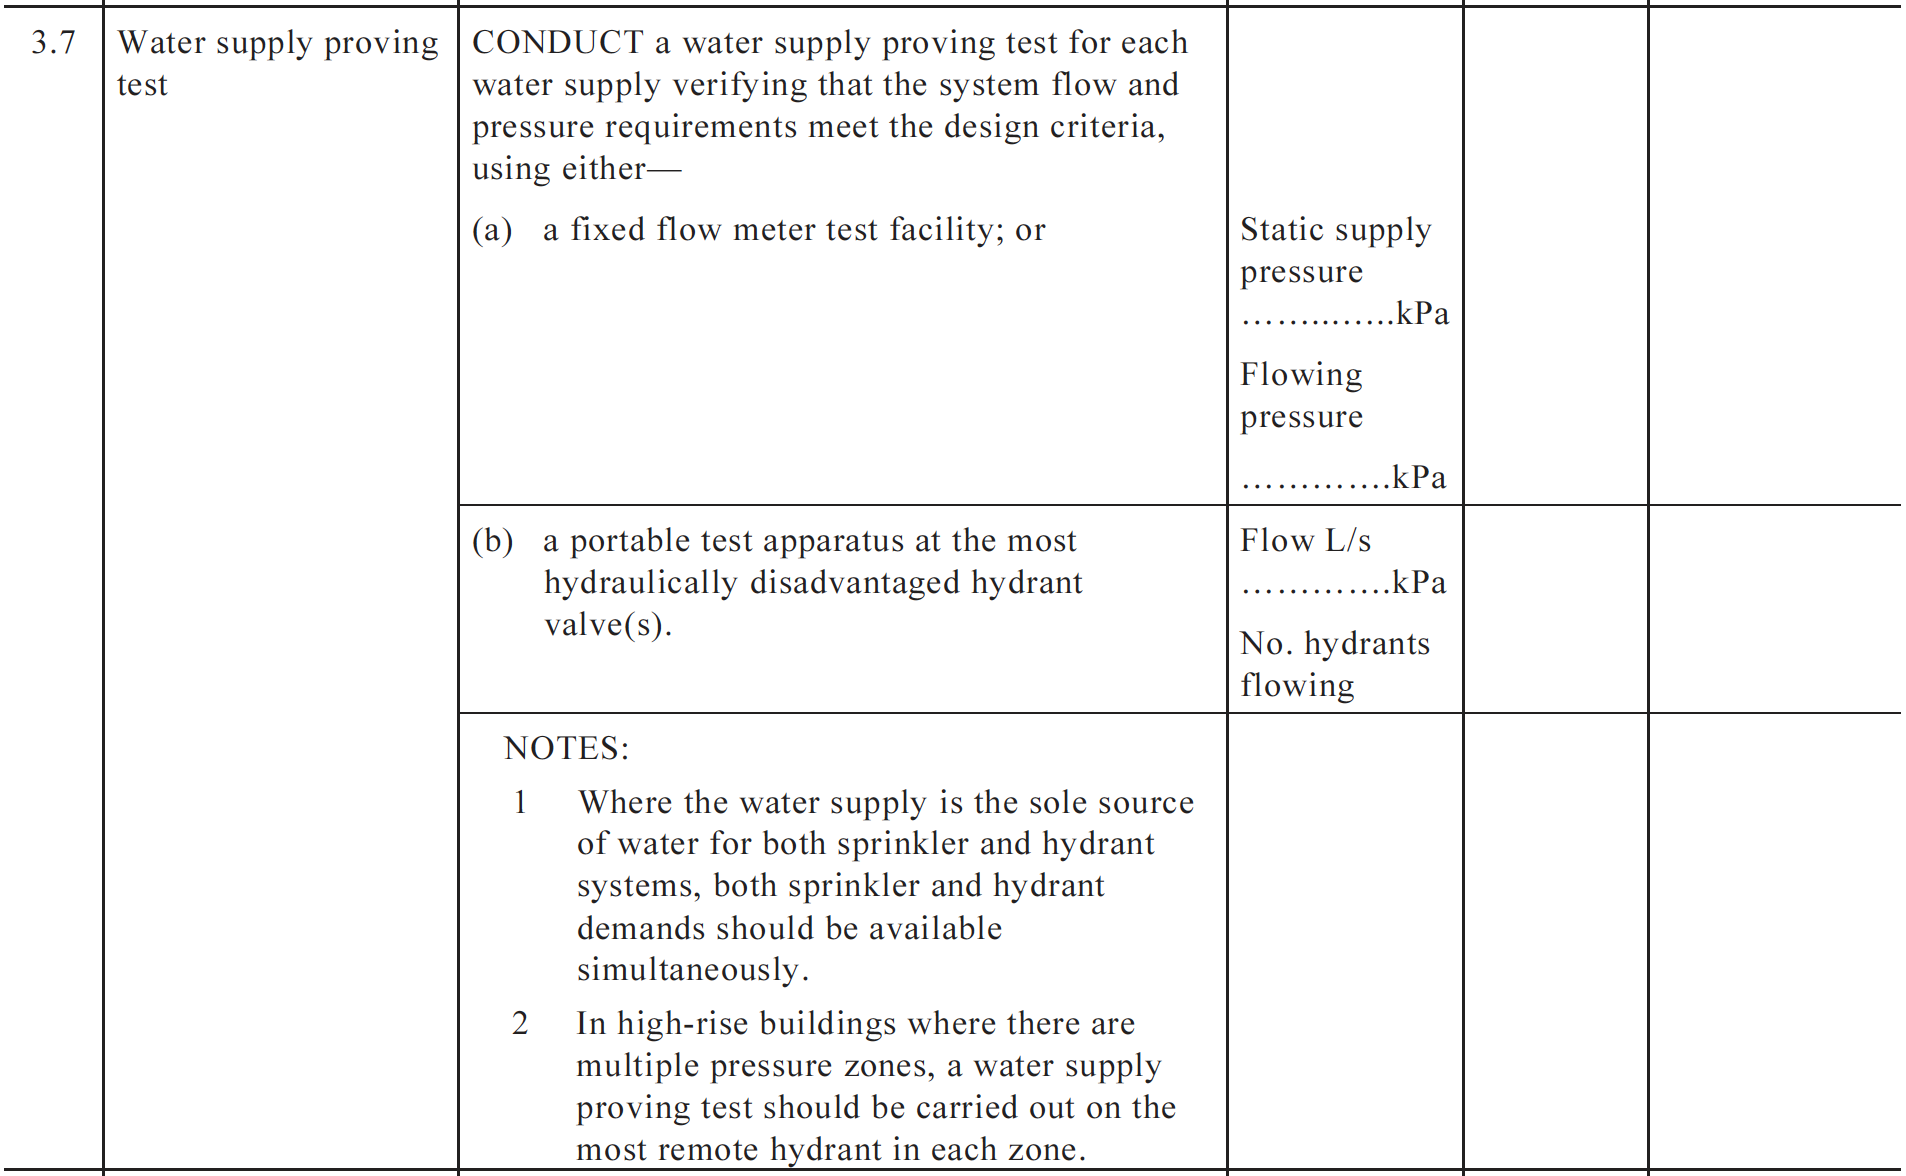 annual-hydrant-flow-testing-as-per-as18512012-table